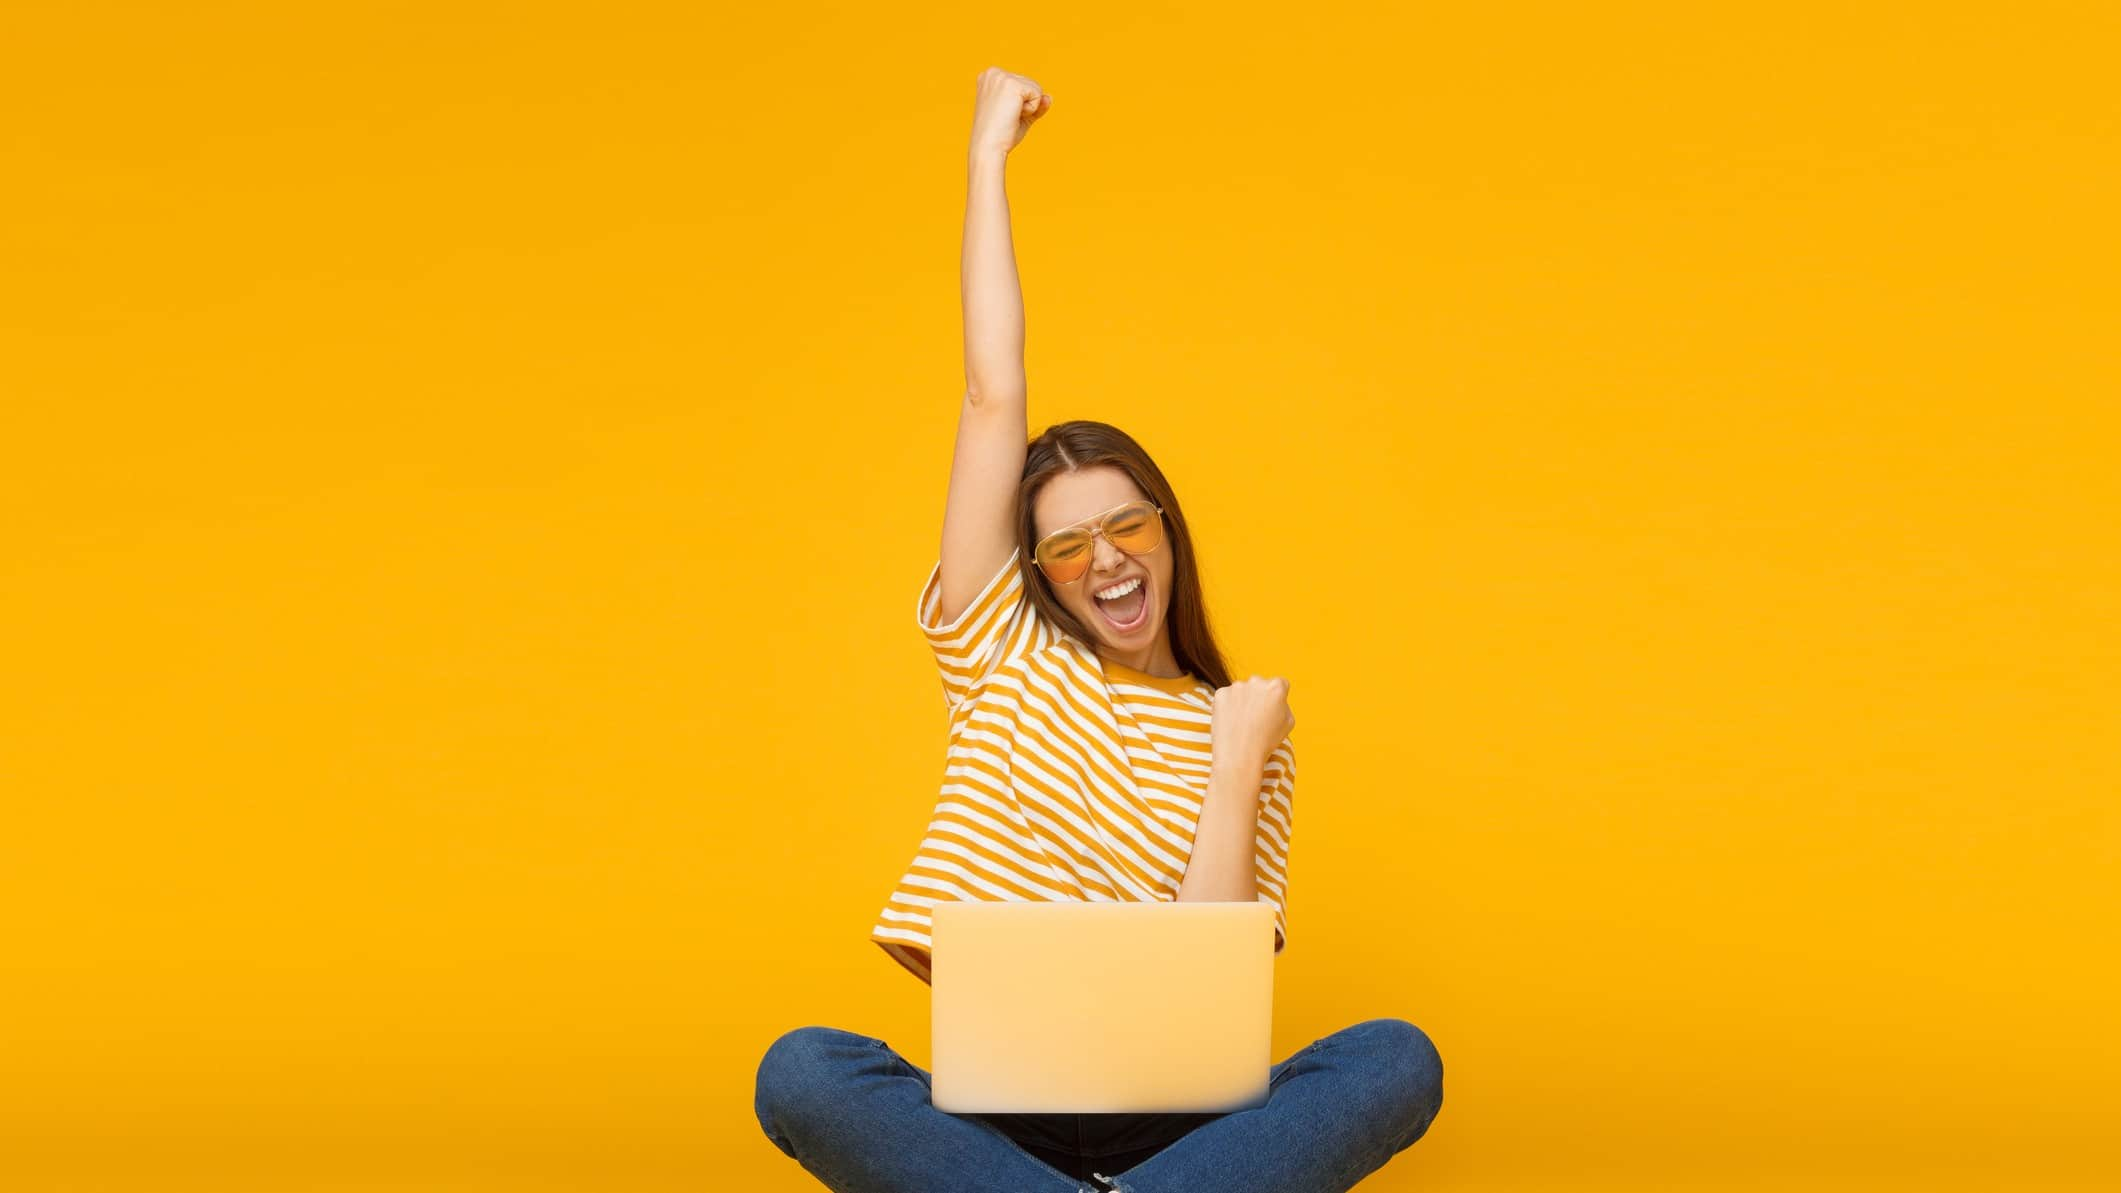 Young woman in yellow striped top with laptop raises arm in victory